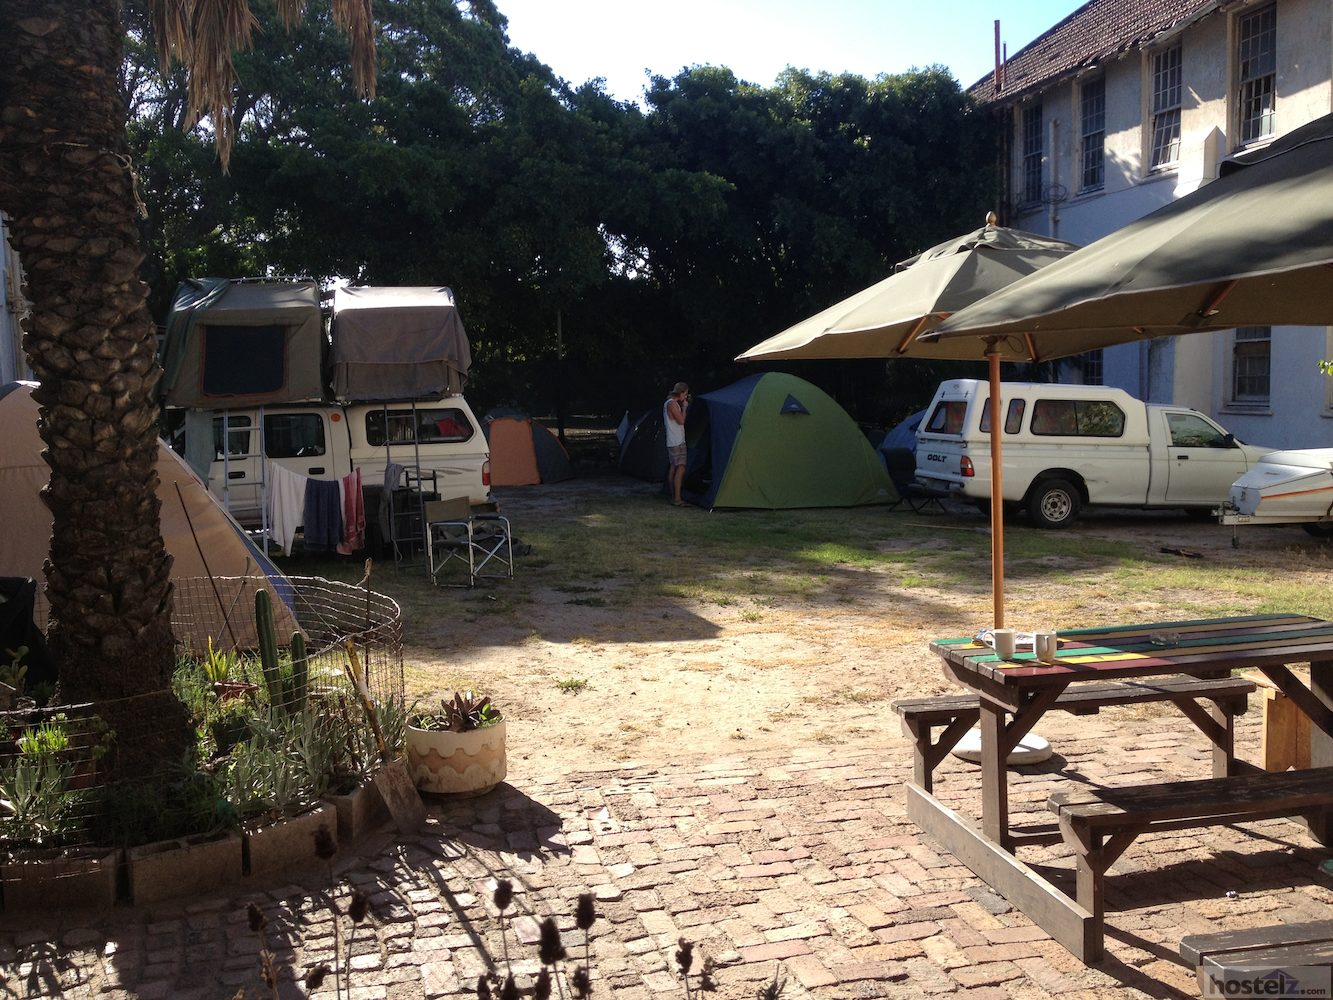 riverlodge backpackers cape town south africa reviews hostelz com